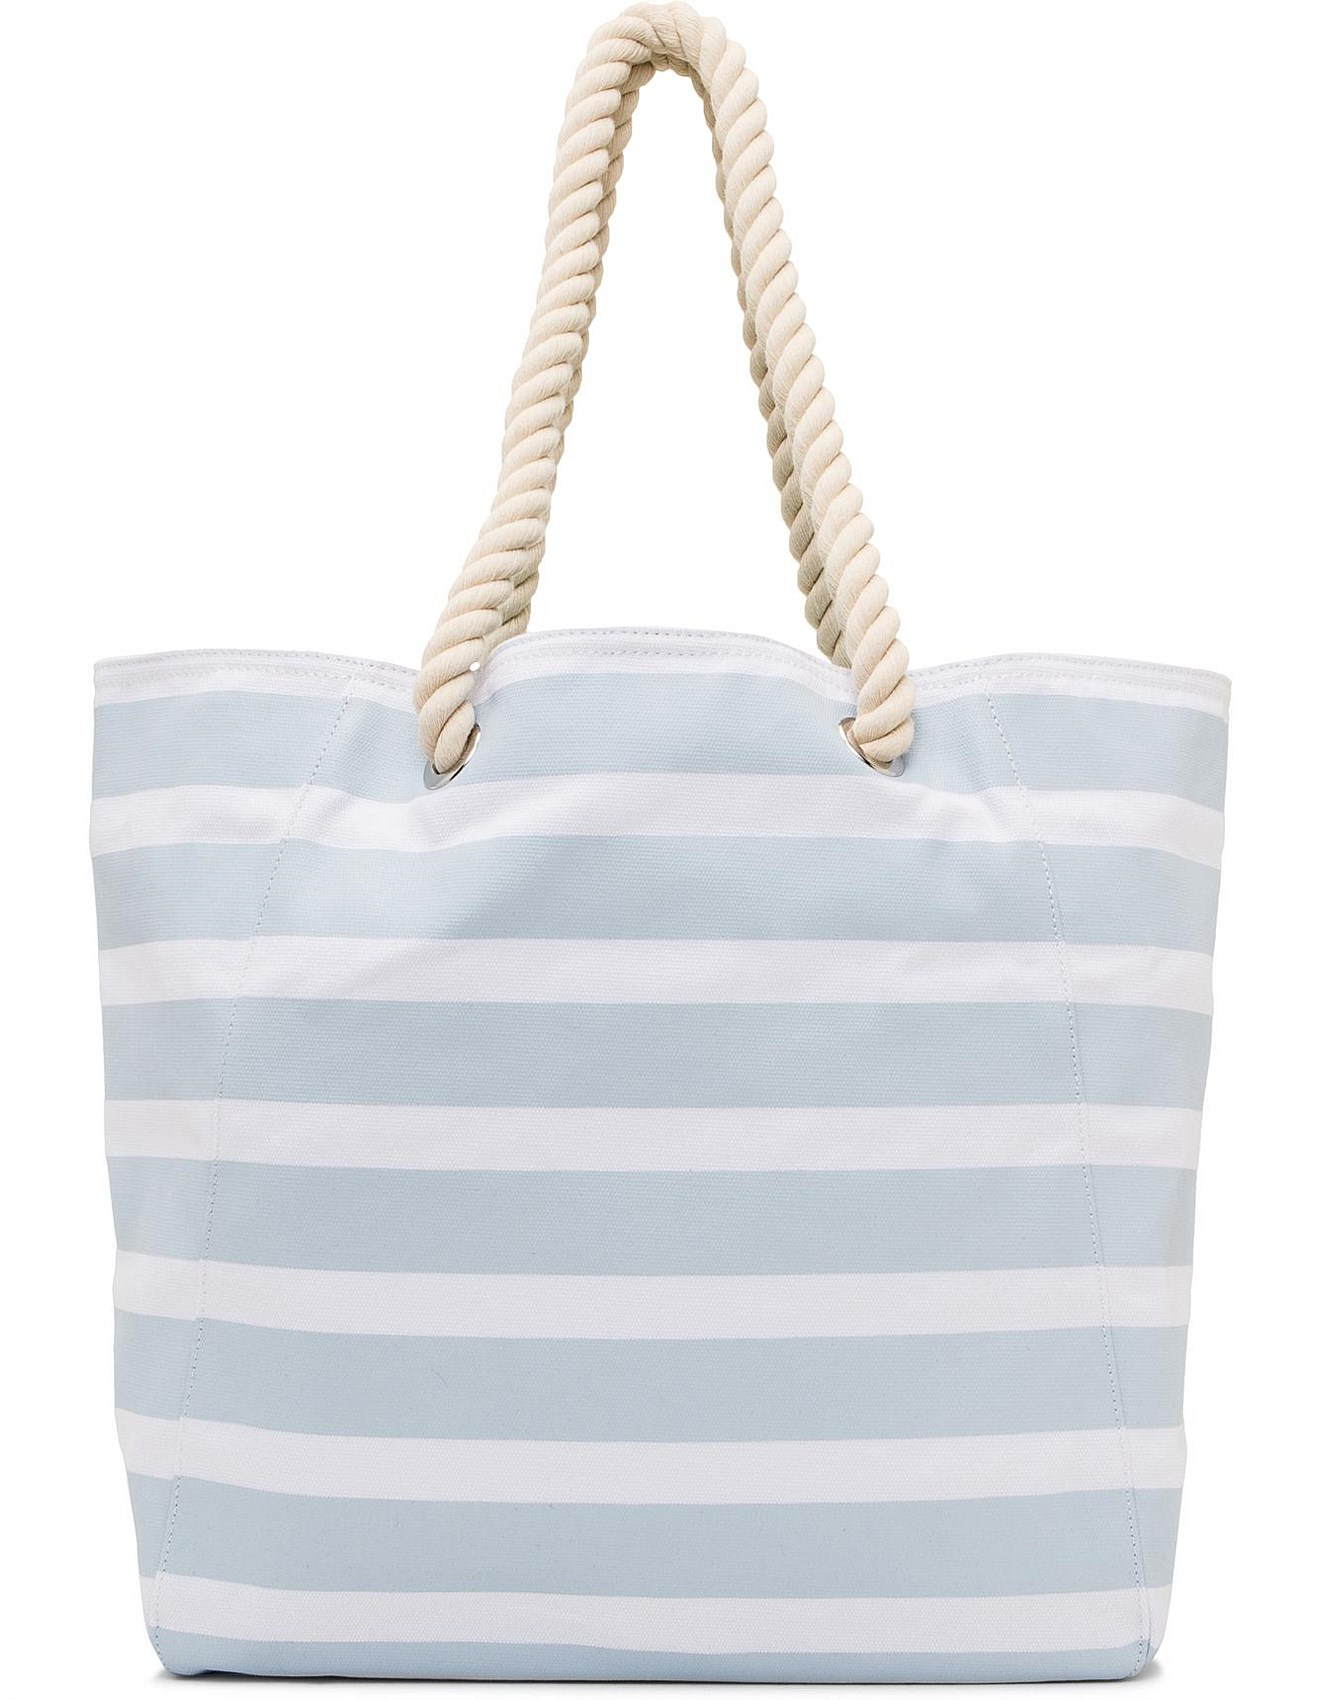 new arrival popular stores newest Ria Beach Bag